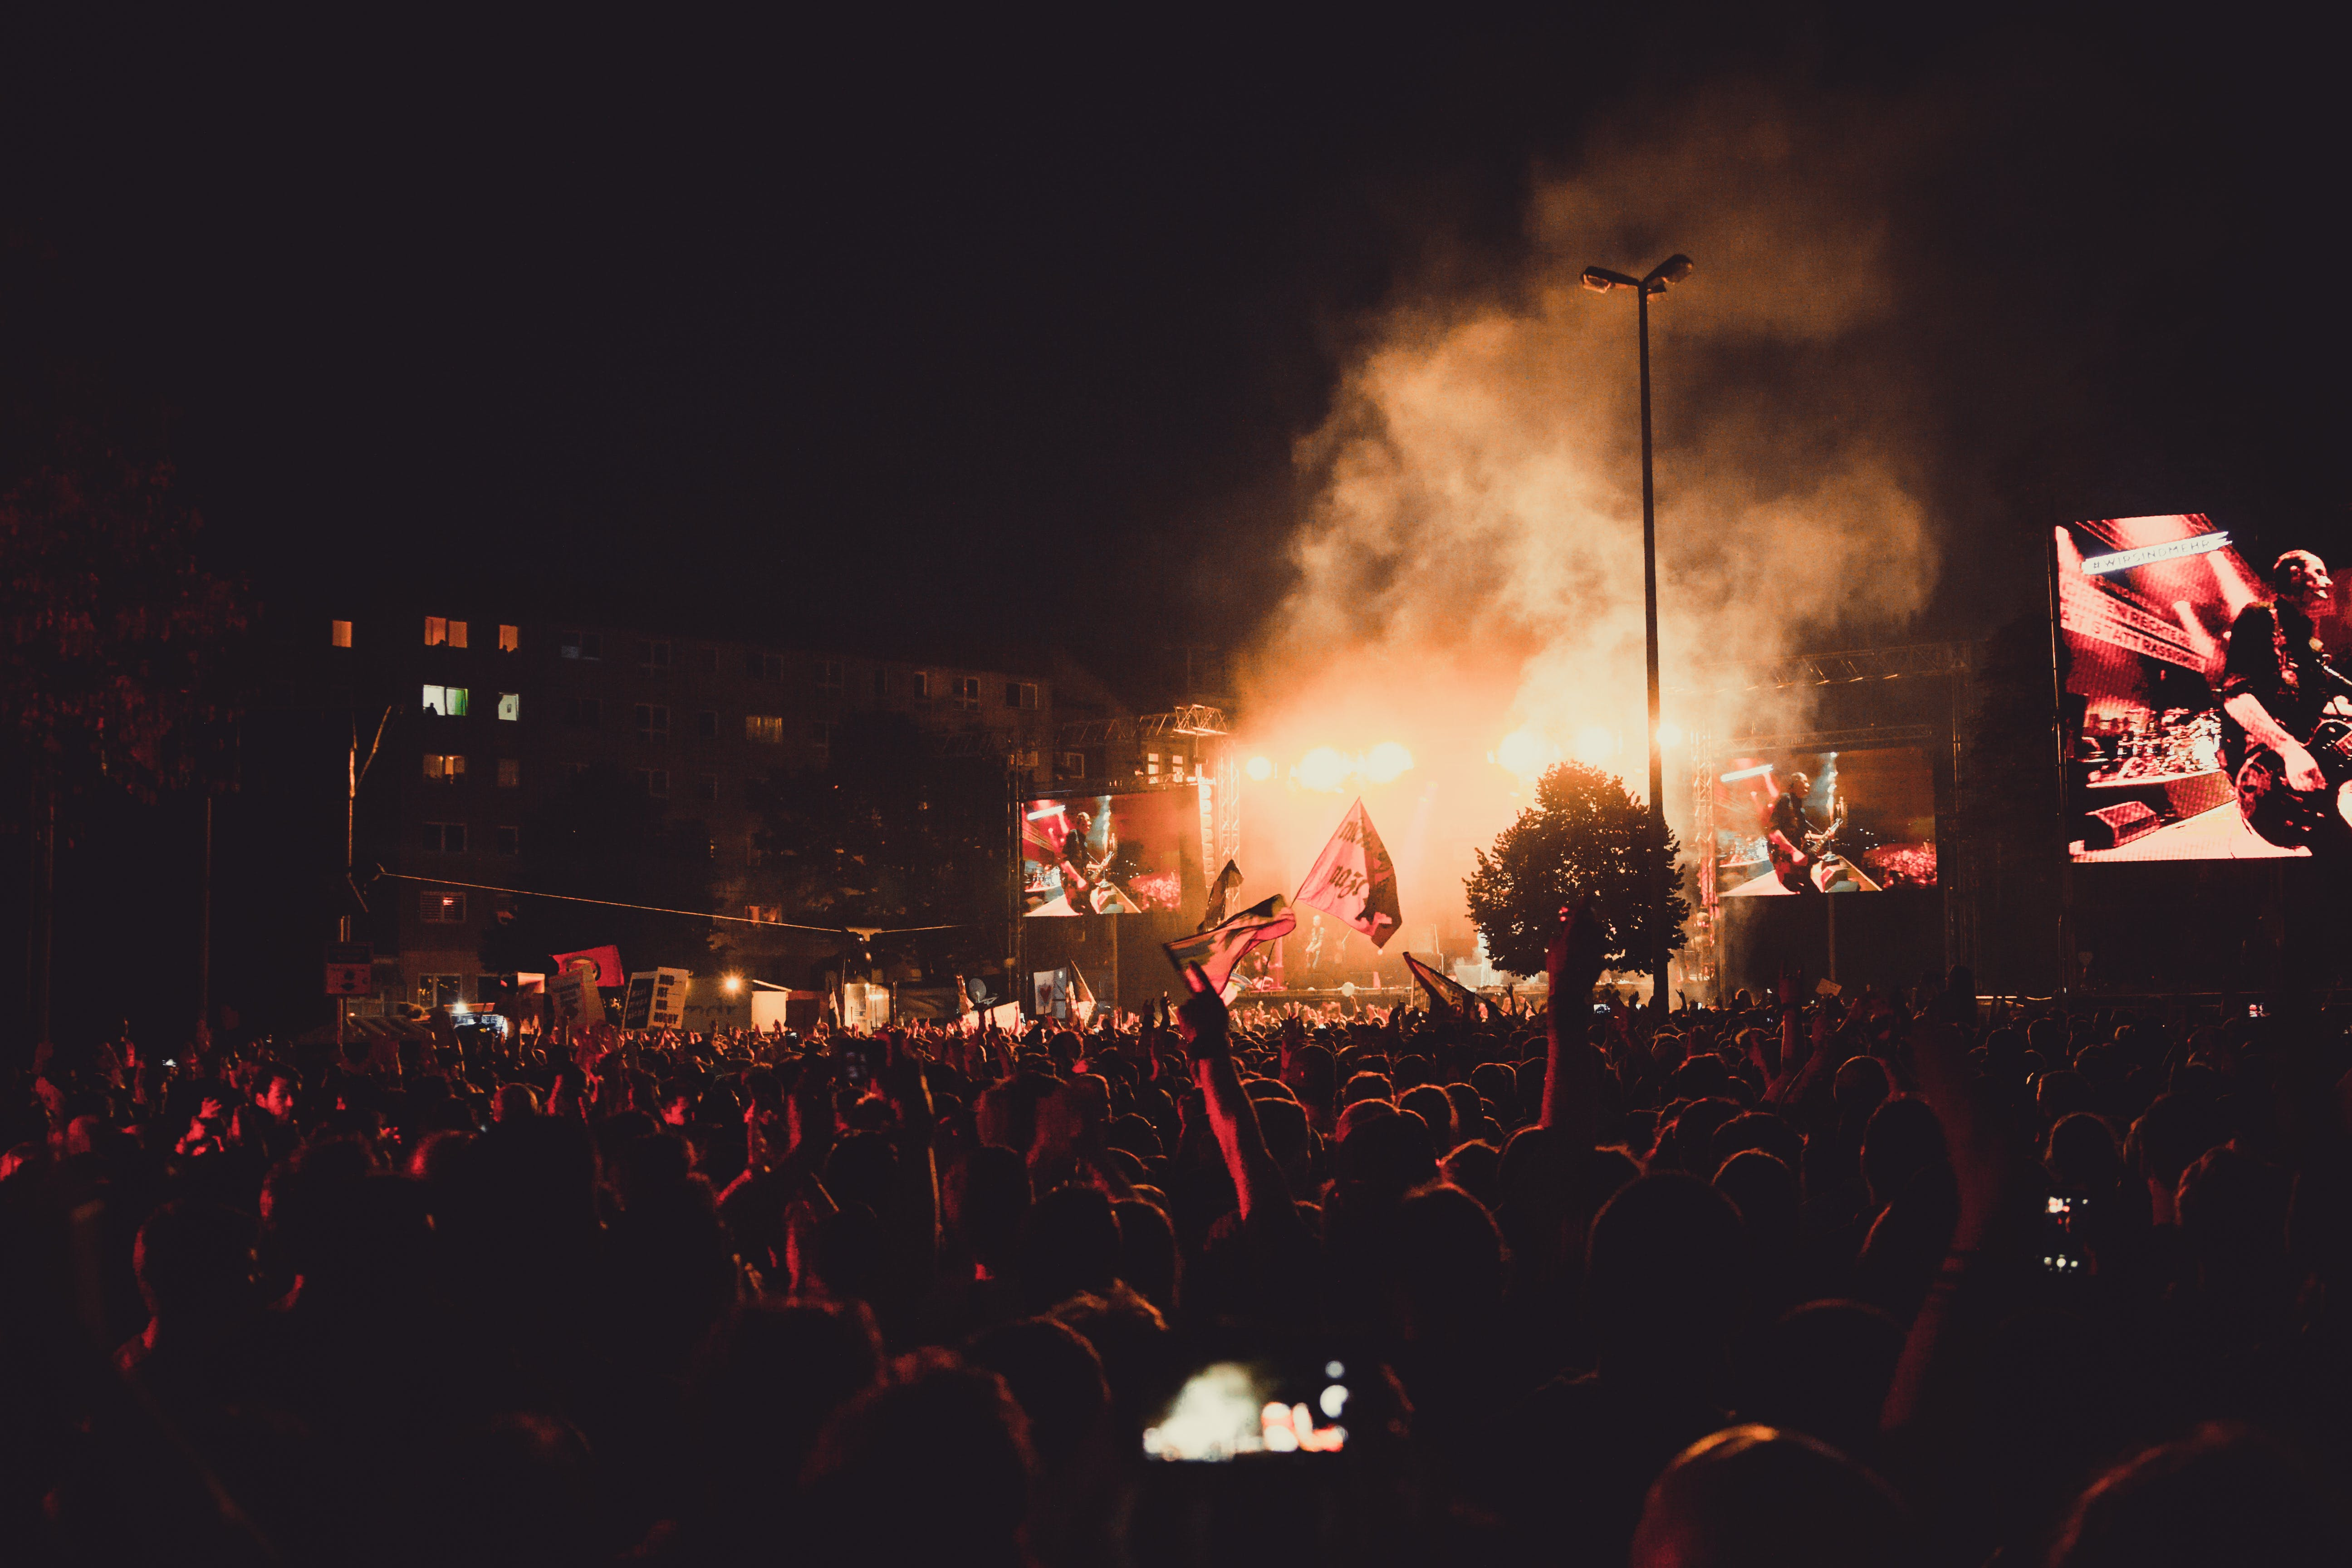 Band Performing on Smoky Stage in Front of People during Night Time